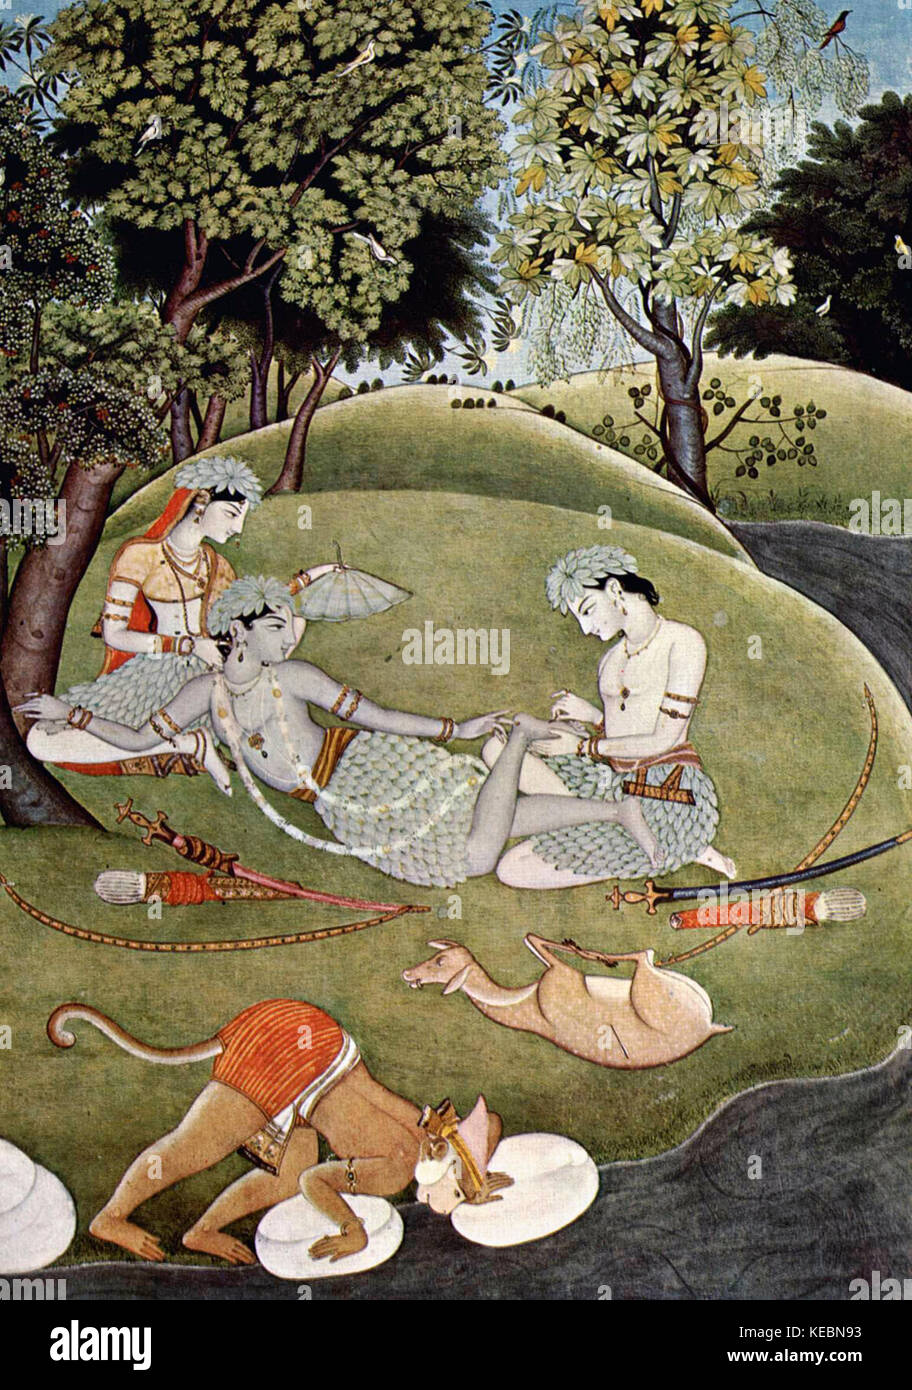 Rama and Sita in the forest from the Ramayana - Stock Image